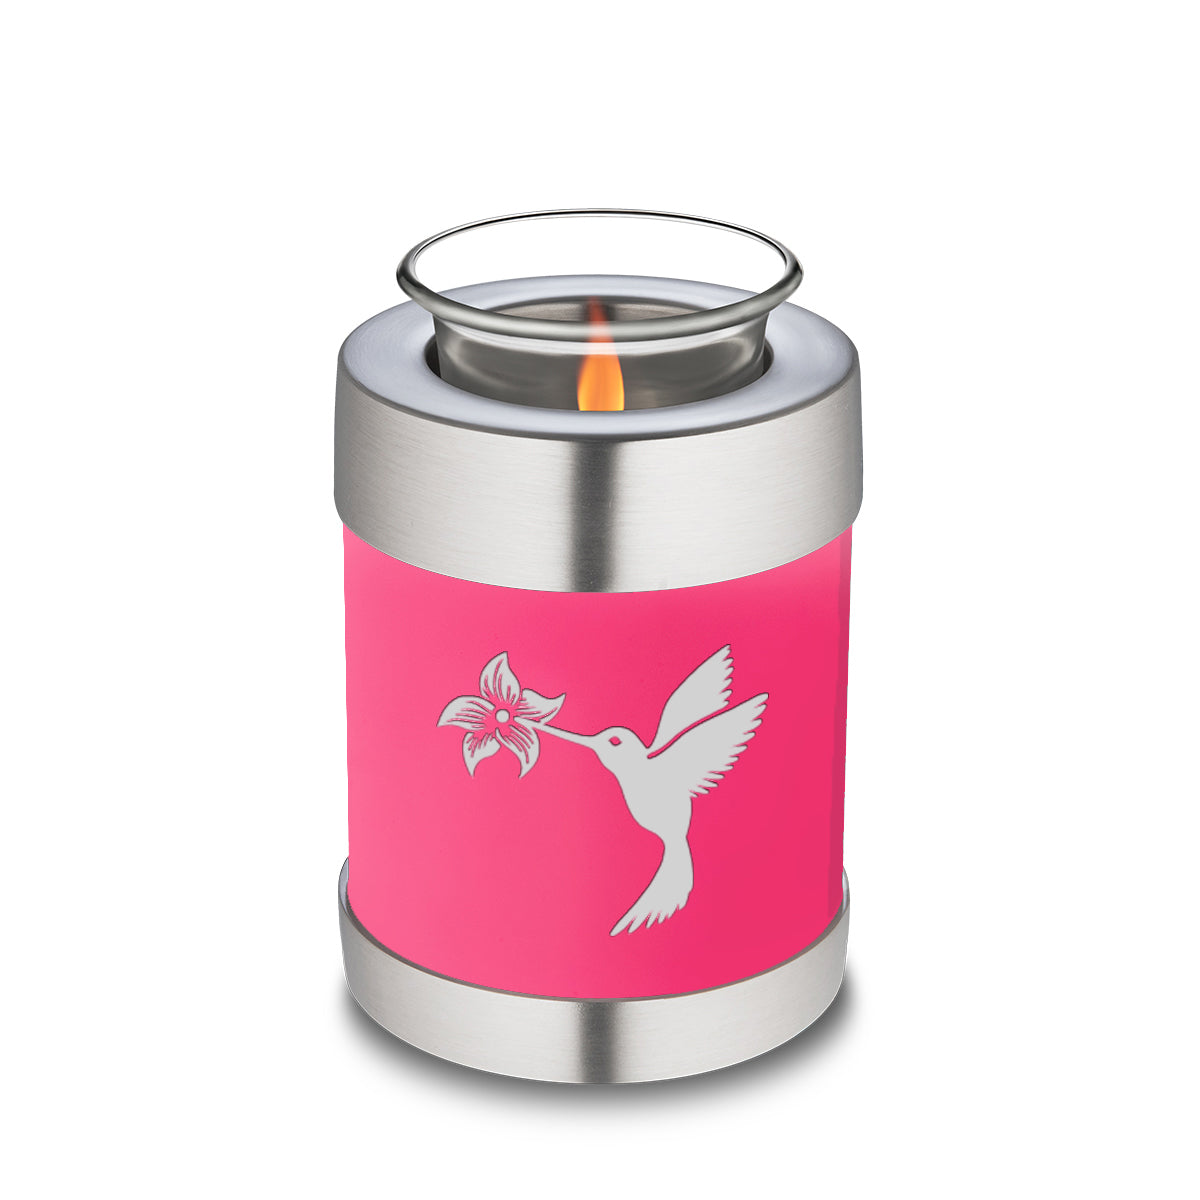 Candle Holder Embrace Bright Pink Hummingbird Cremation Urn